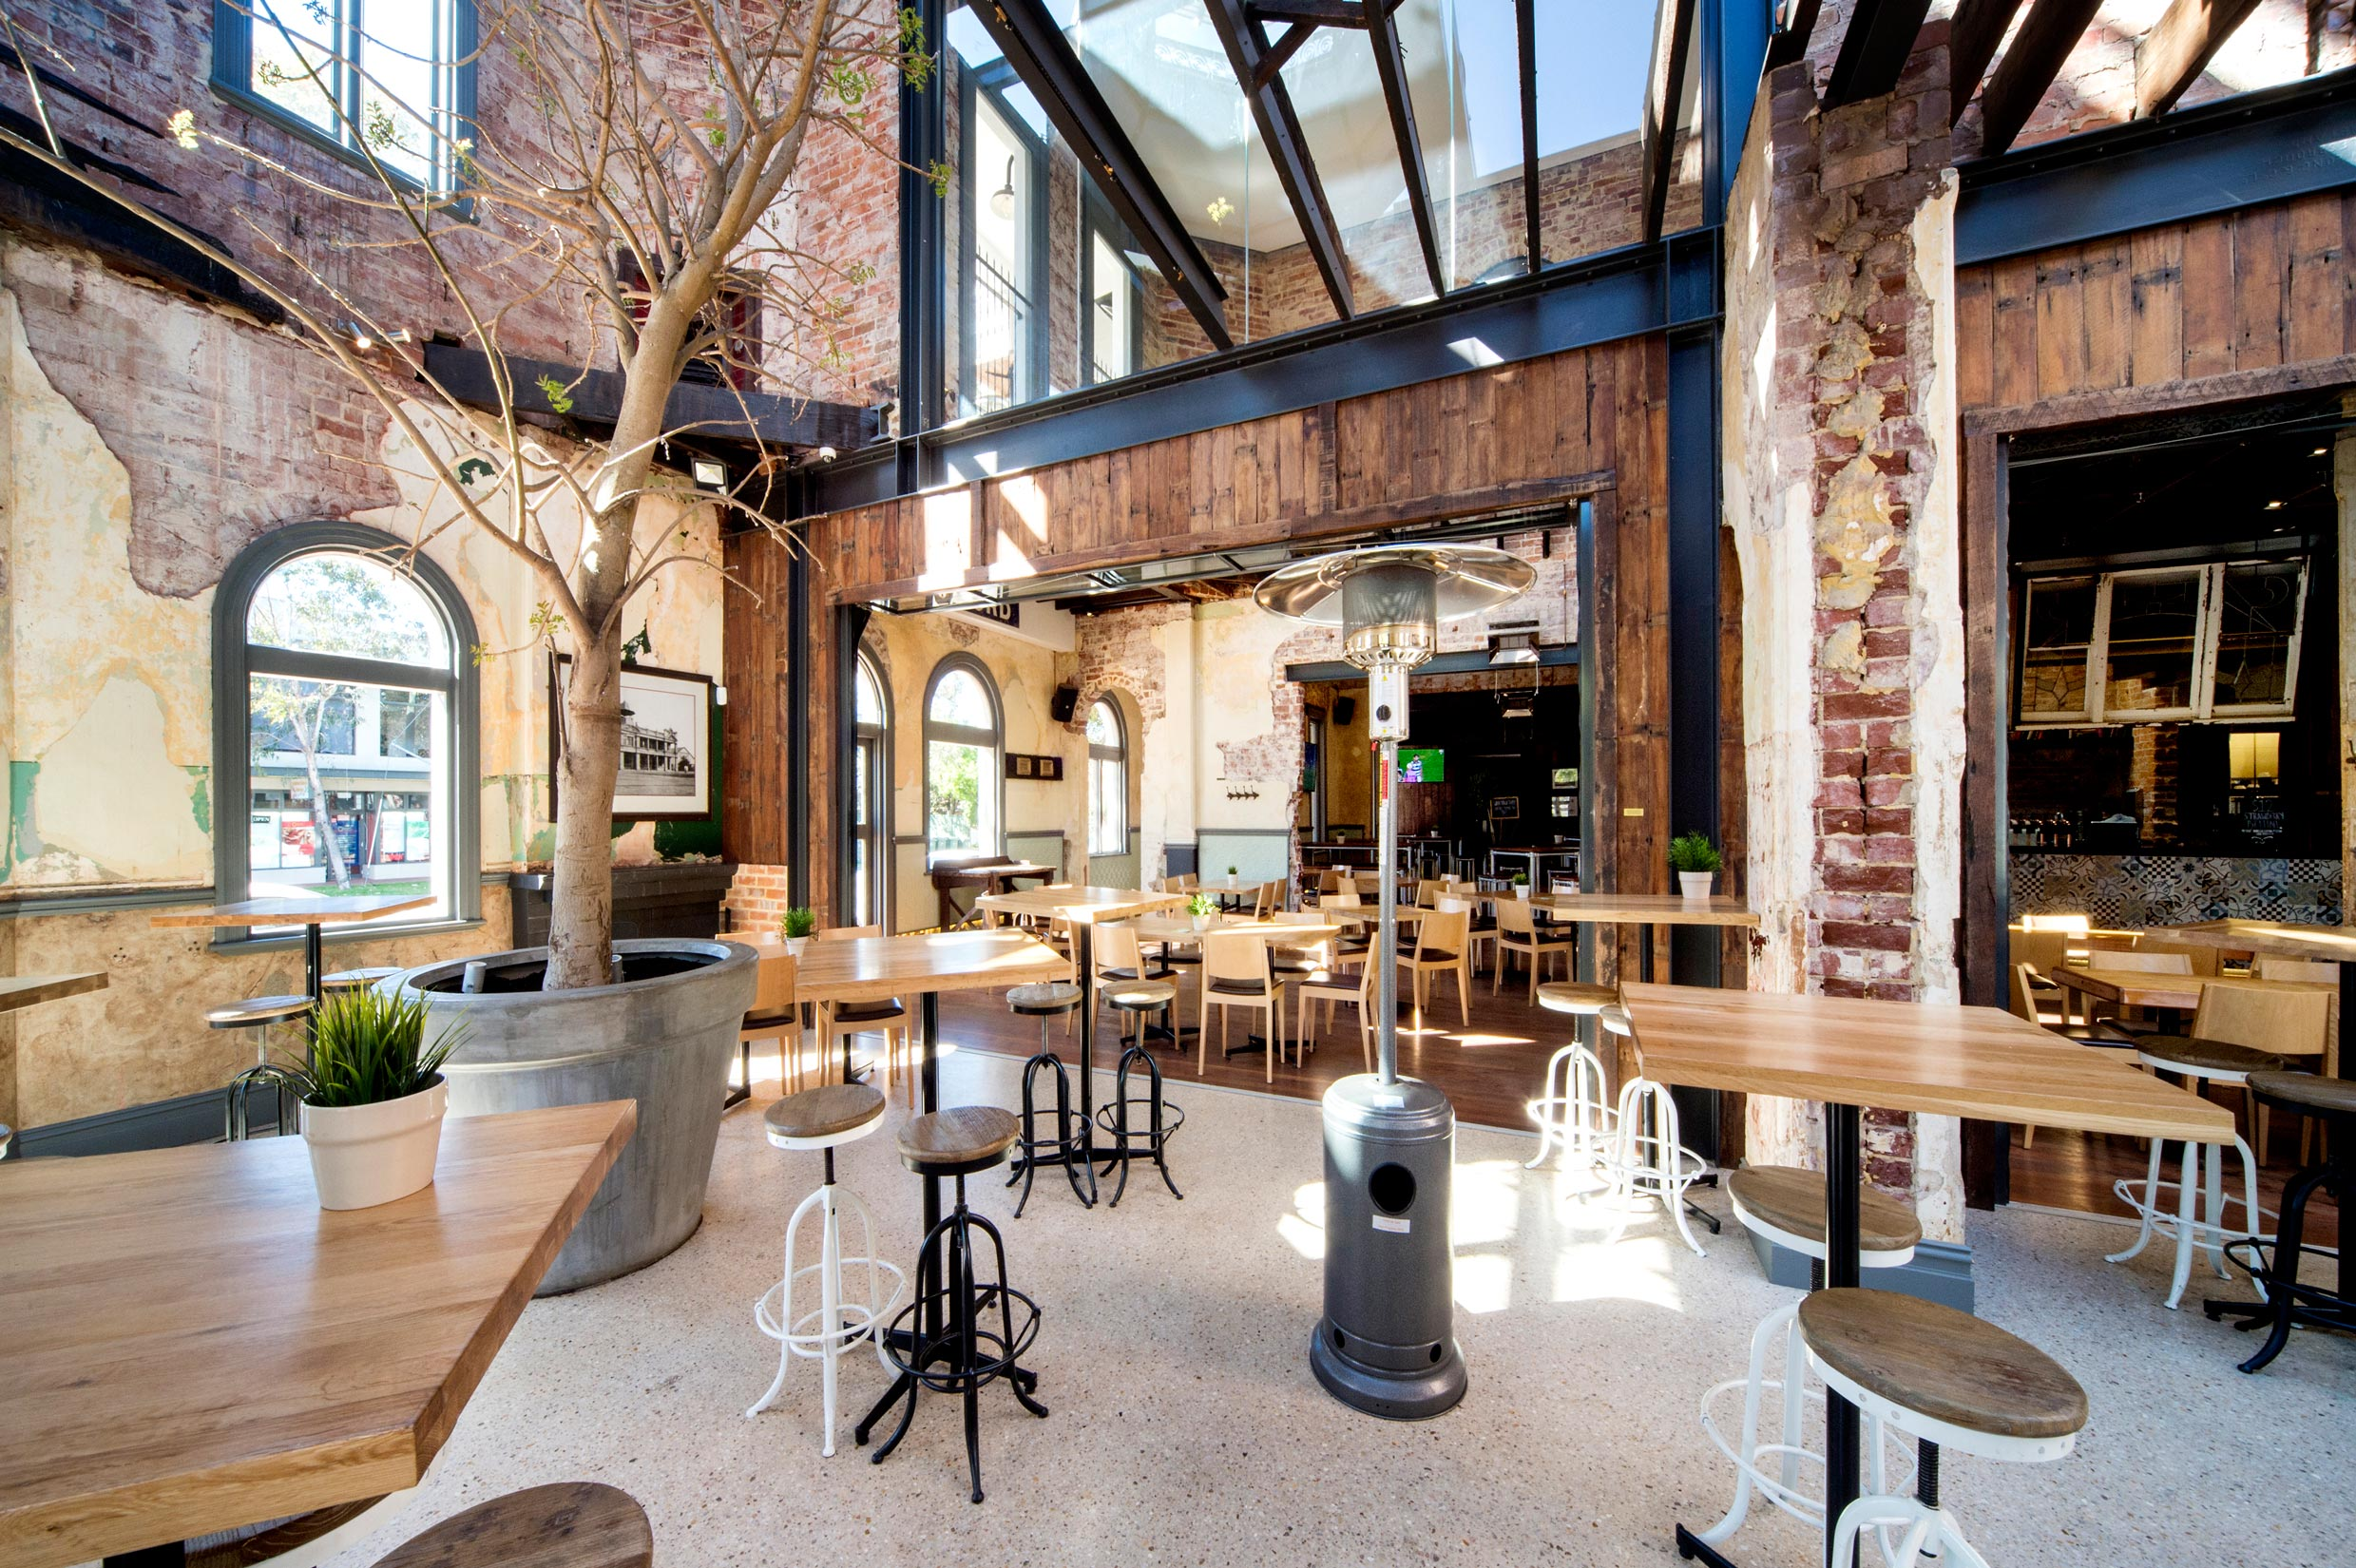 The Guildford Hotel heritage dining room with restored brick & timber walls, steel beams and concrete floors